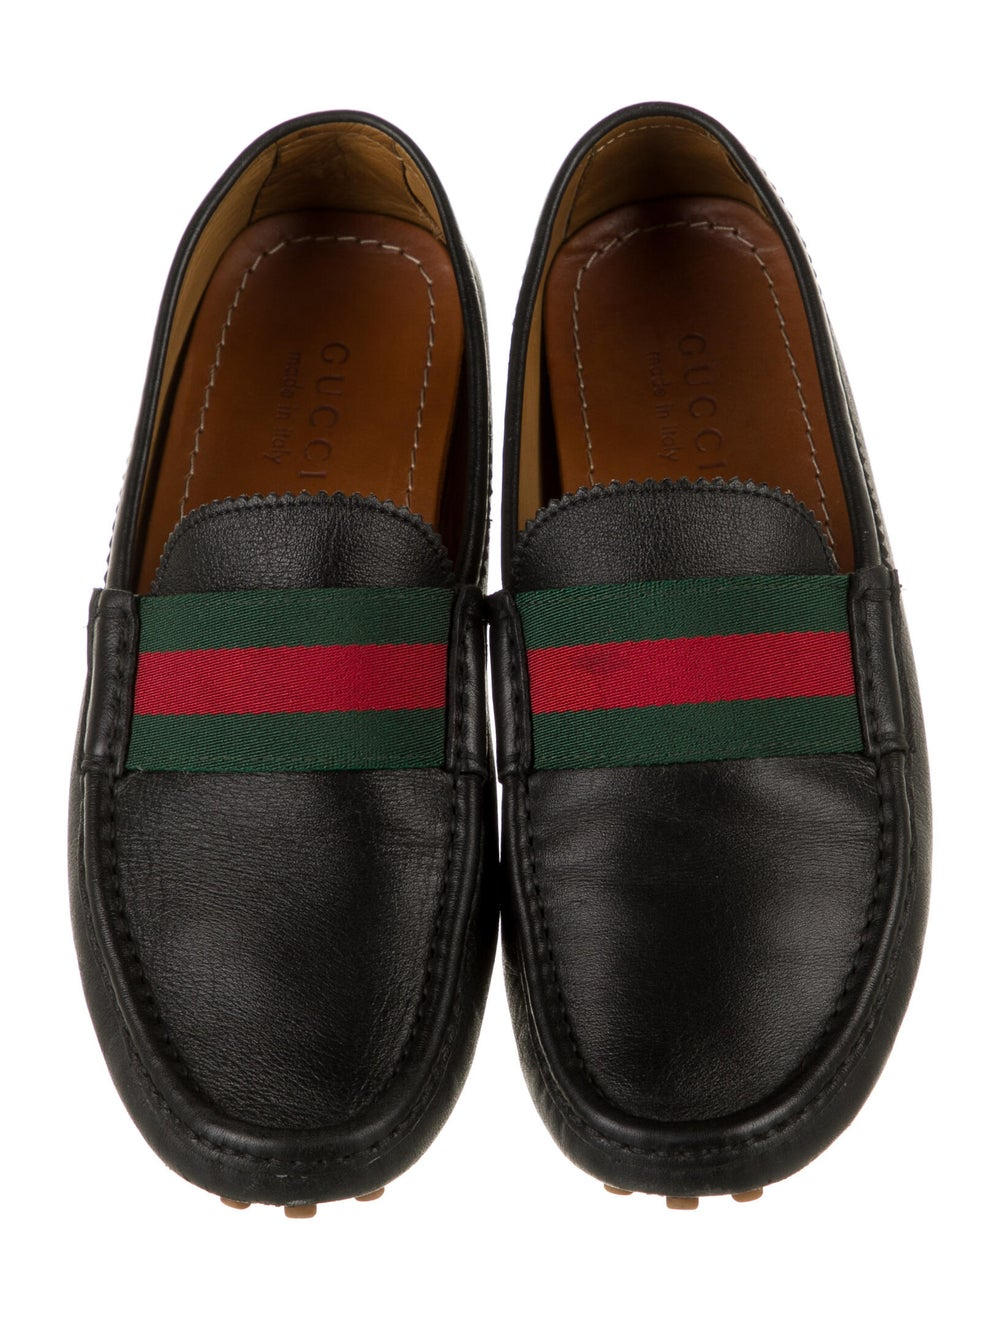 Gucci Web Accent Leather Drivers Black - image 3